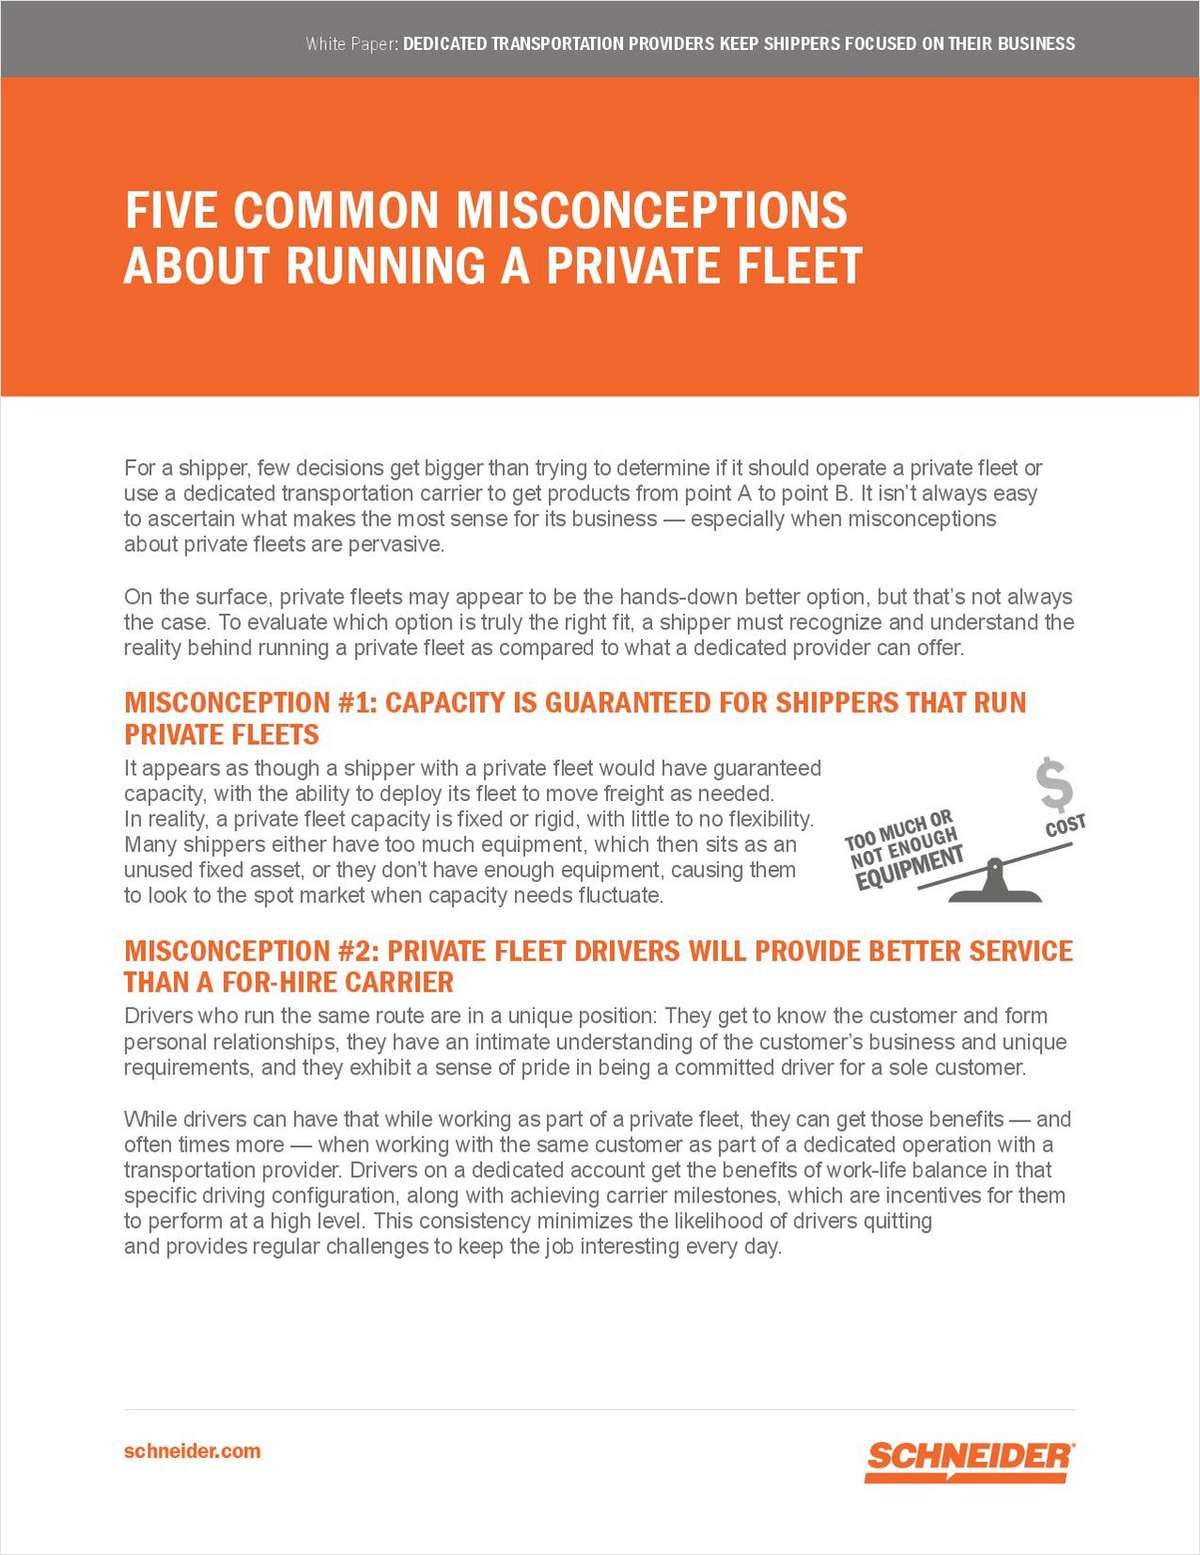 Five Common Misconceptions About Running a Private Fleet